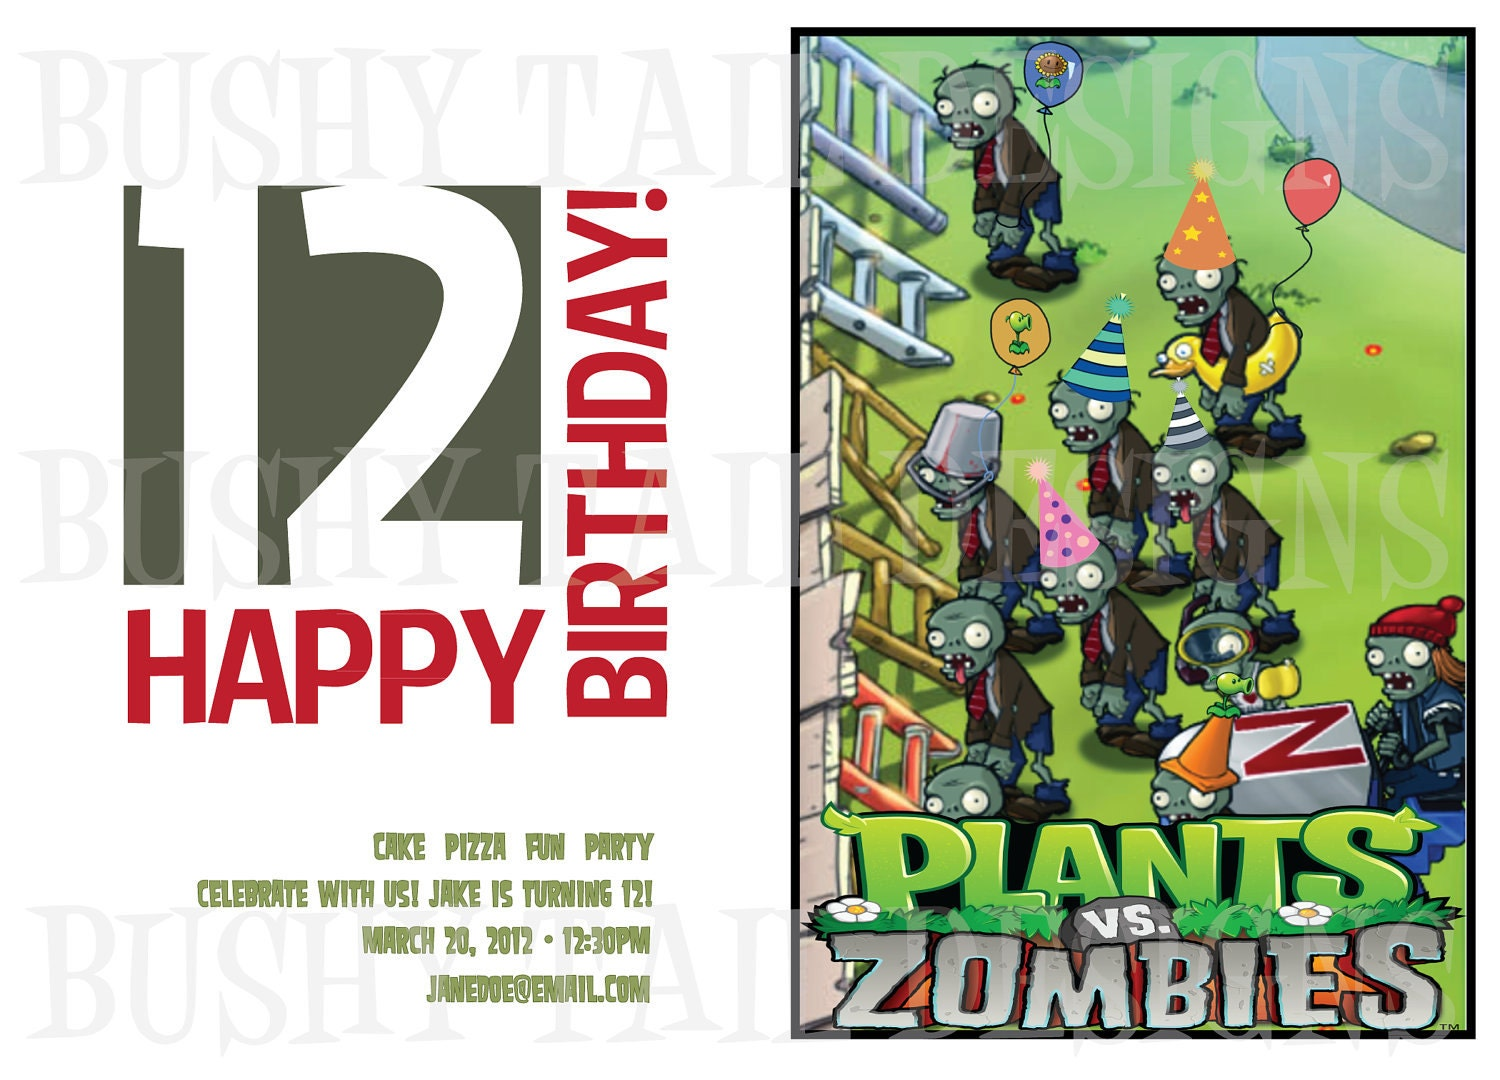 plants vs zombies birthday card pictures to pin on pinterest, Birthday invitations